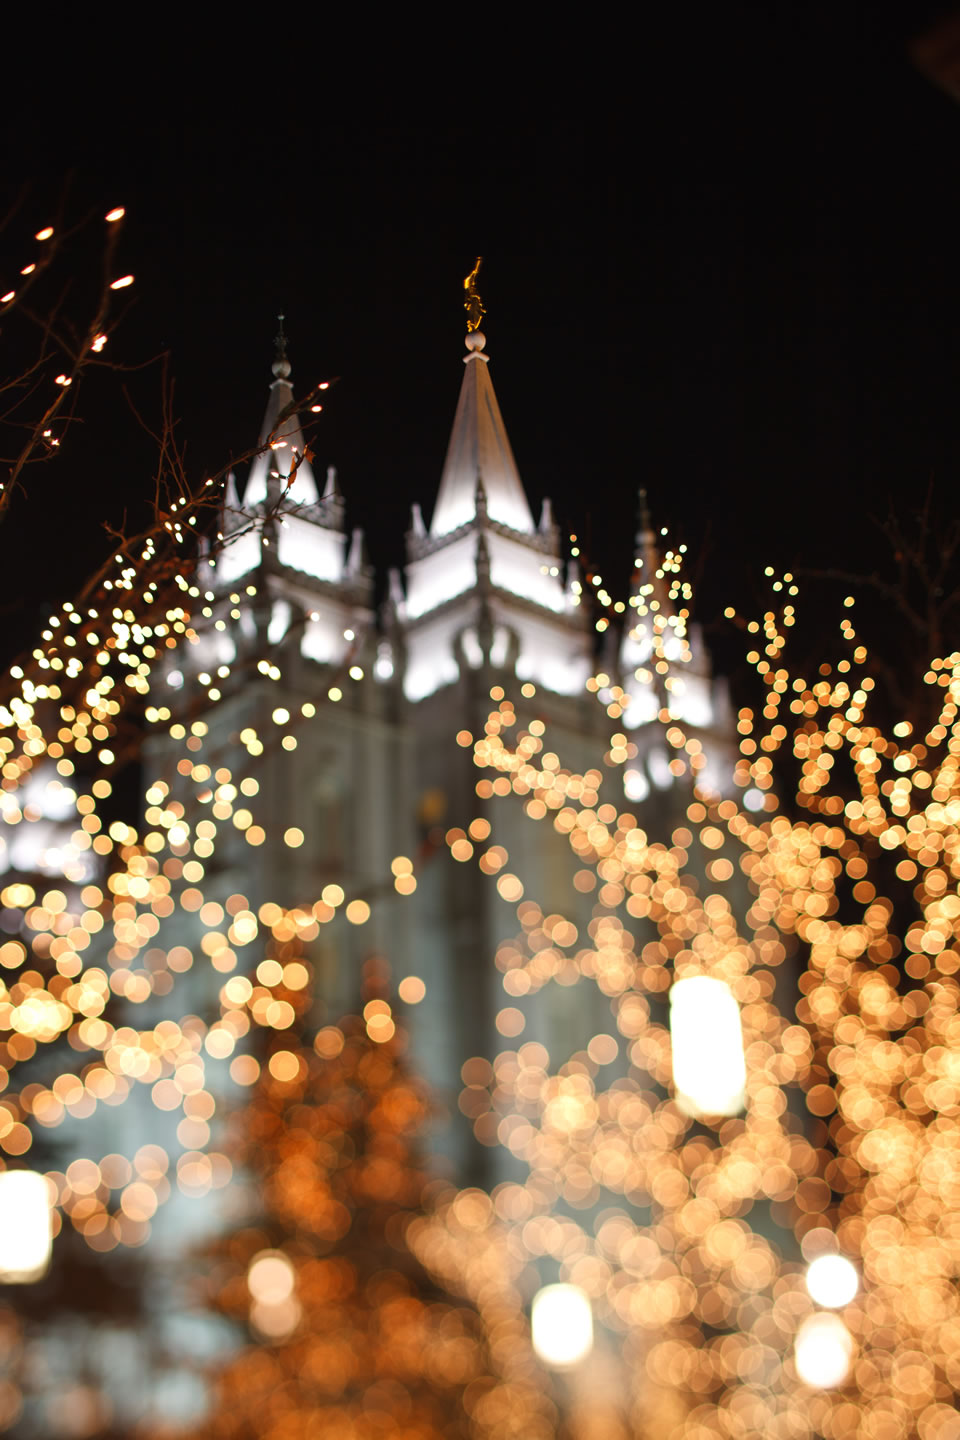 Salt Lake Temple surrounded by the glow of Christmas lights